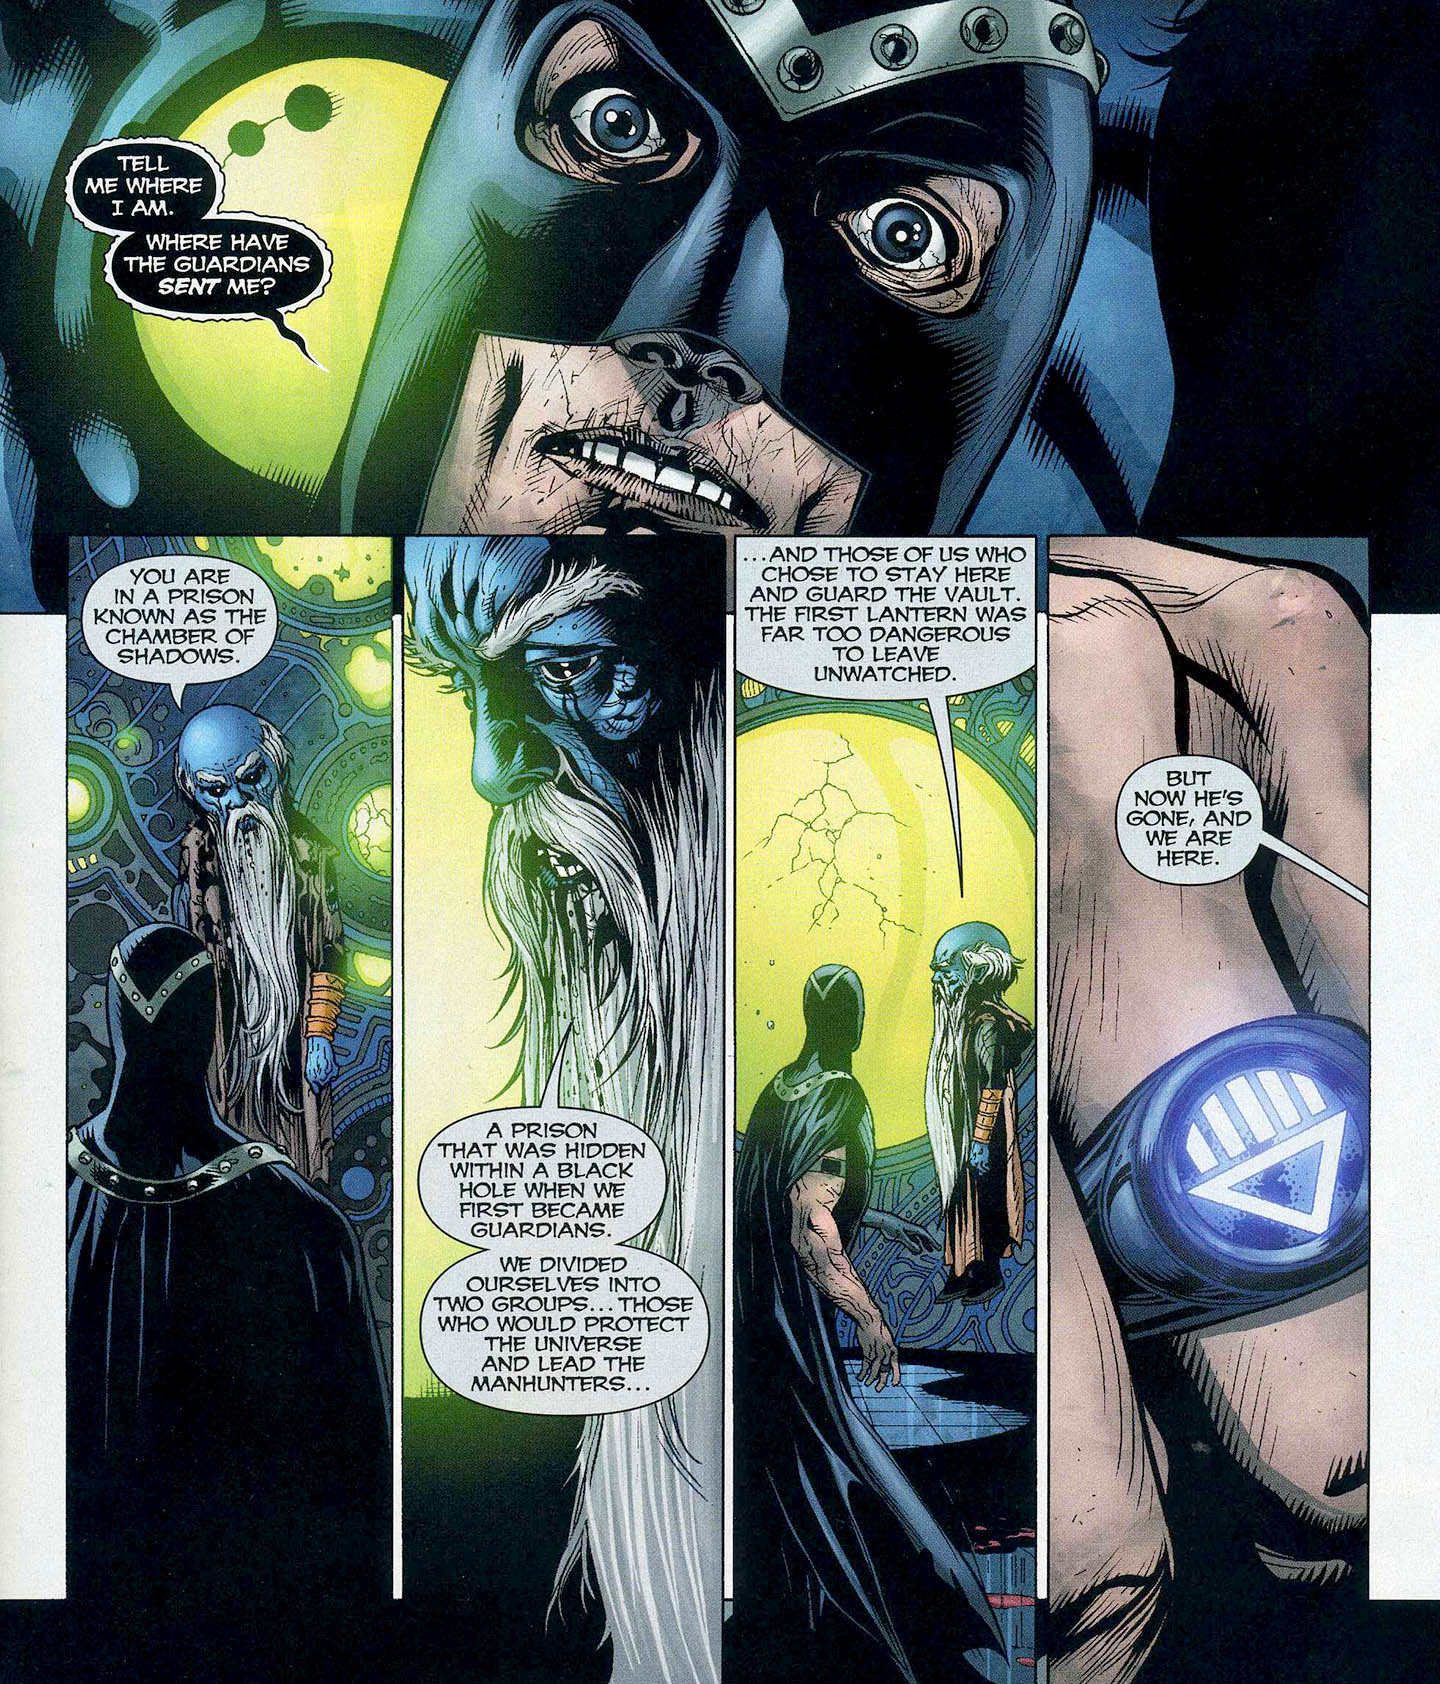 Black Hand Resurrects A Guardian Of The Universe